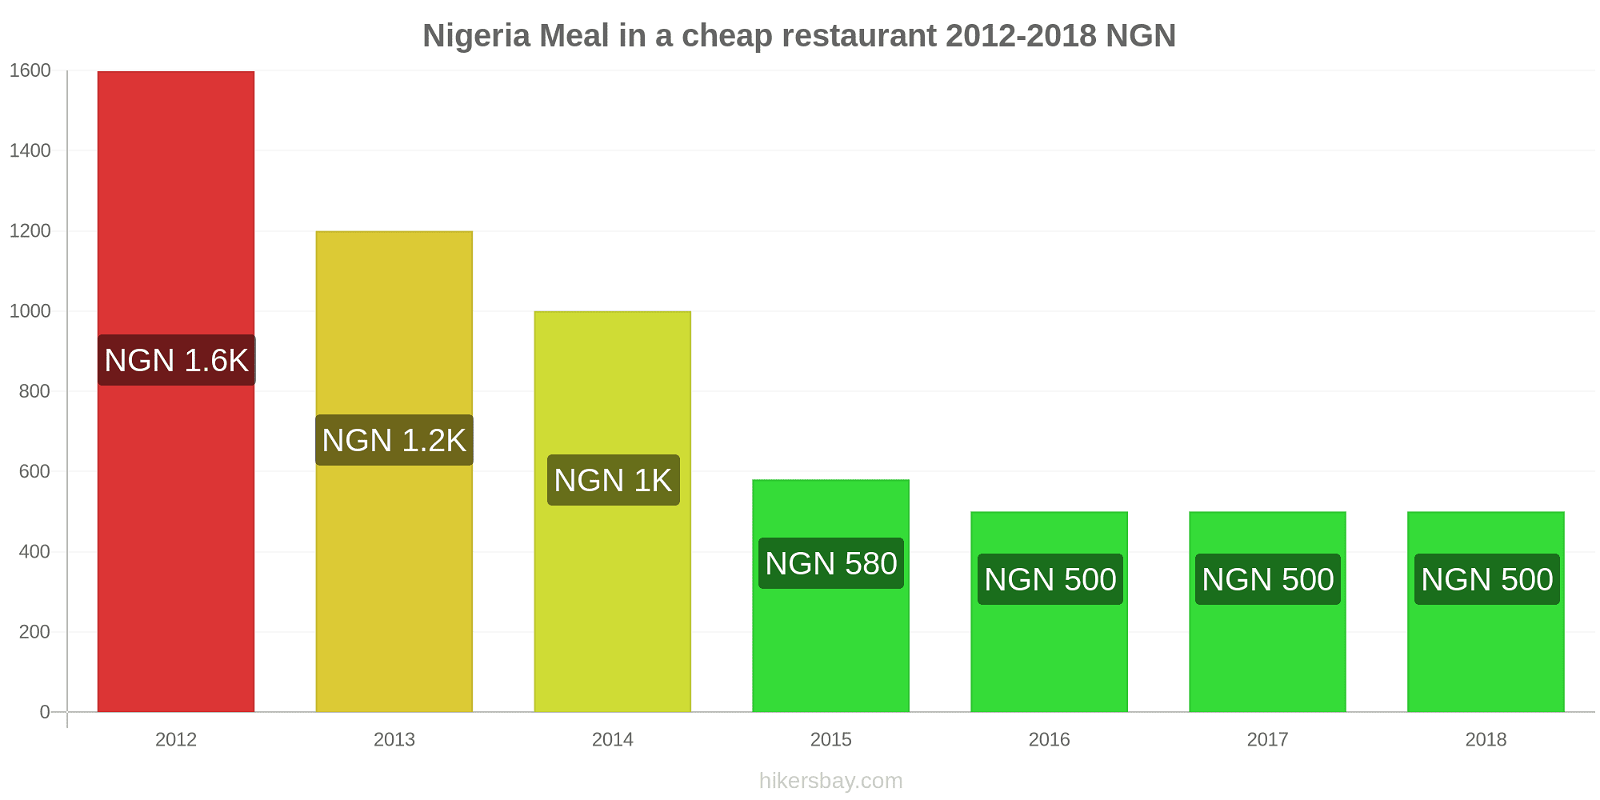 Nigeria price changes Meal in a cheap restaurant hikersbay.com